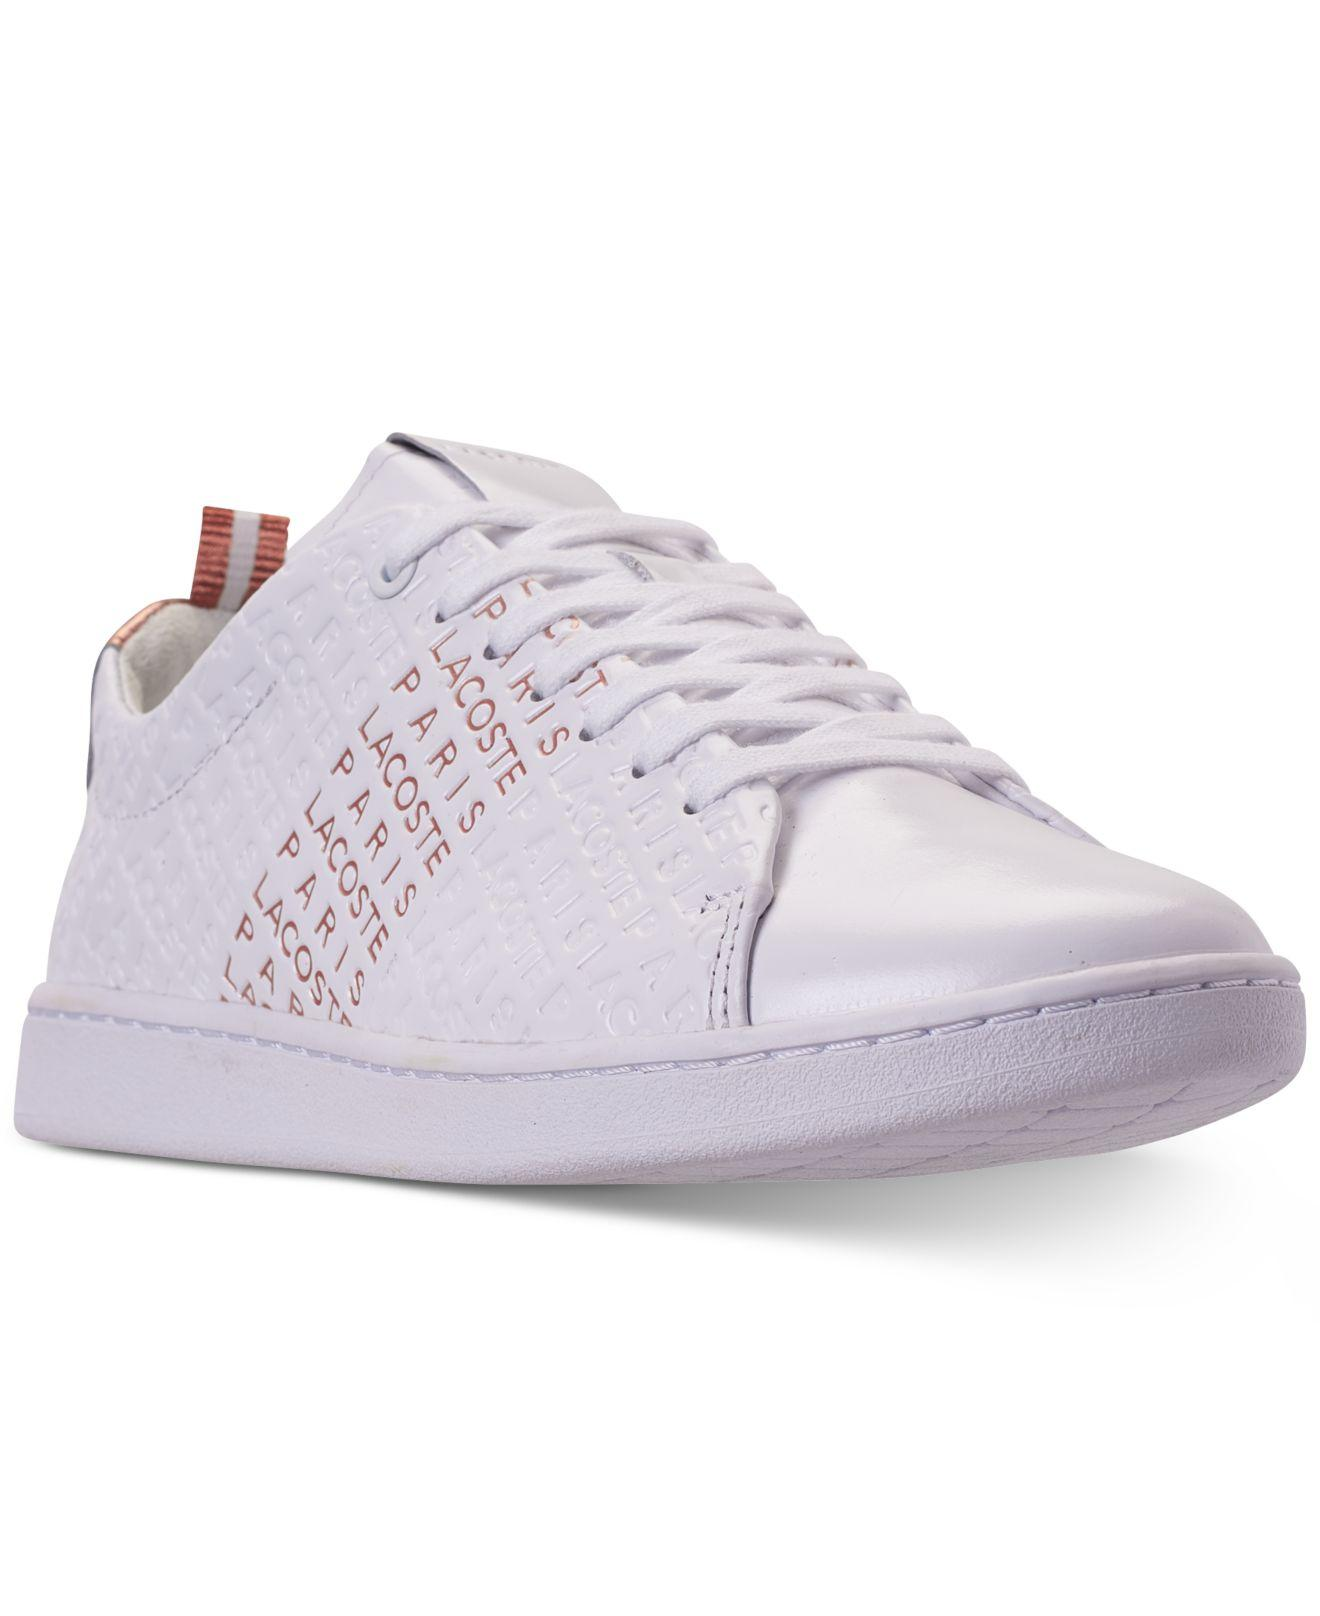 3b77d7d4a Lyst - Lacoste Carnaby Evo Paris Casual Sneakers From Finish Line